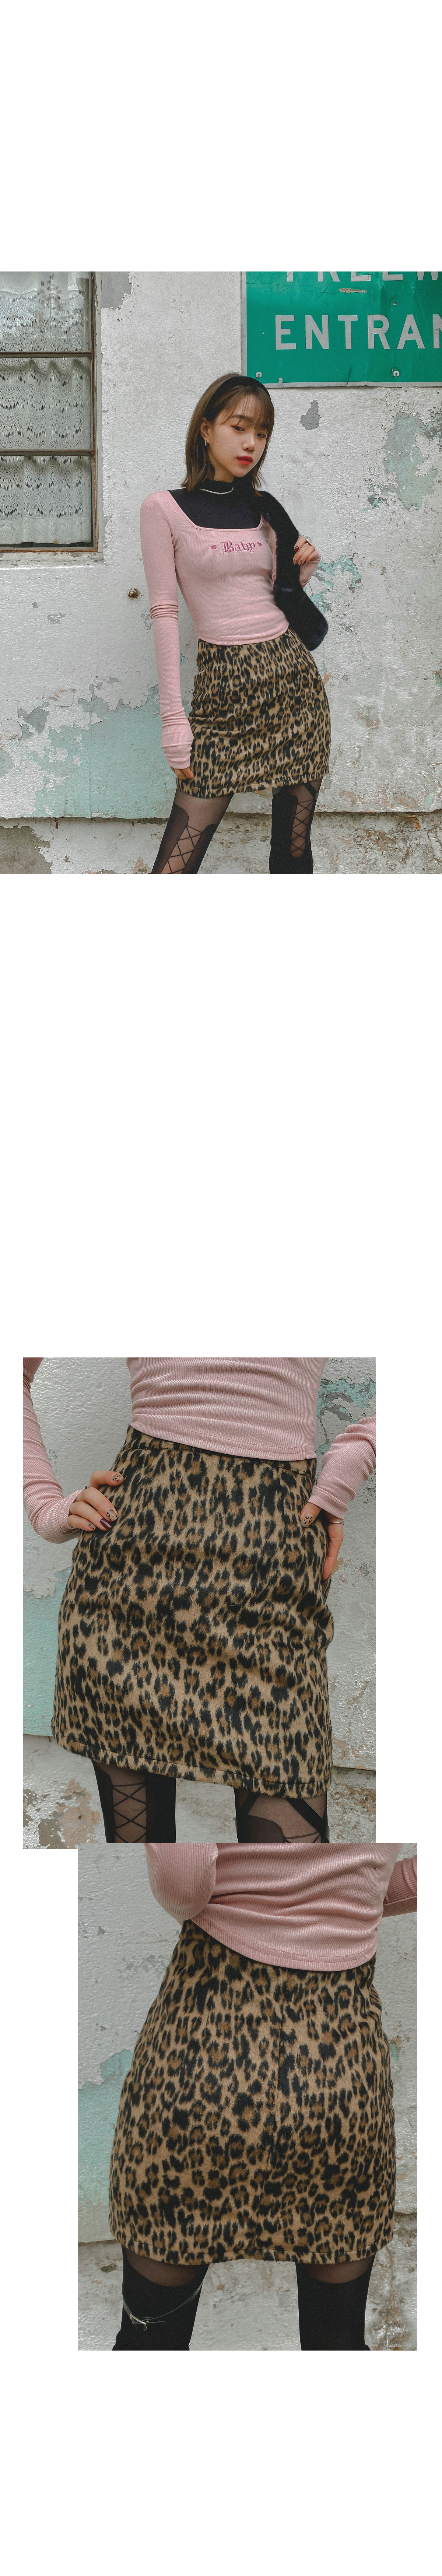 Leopard tanger mini skirt